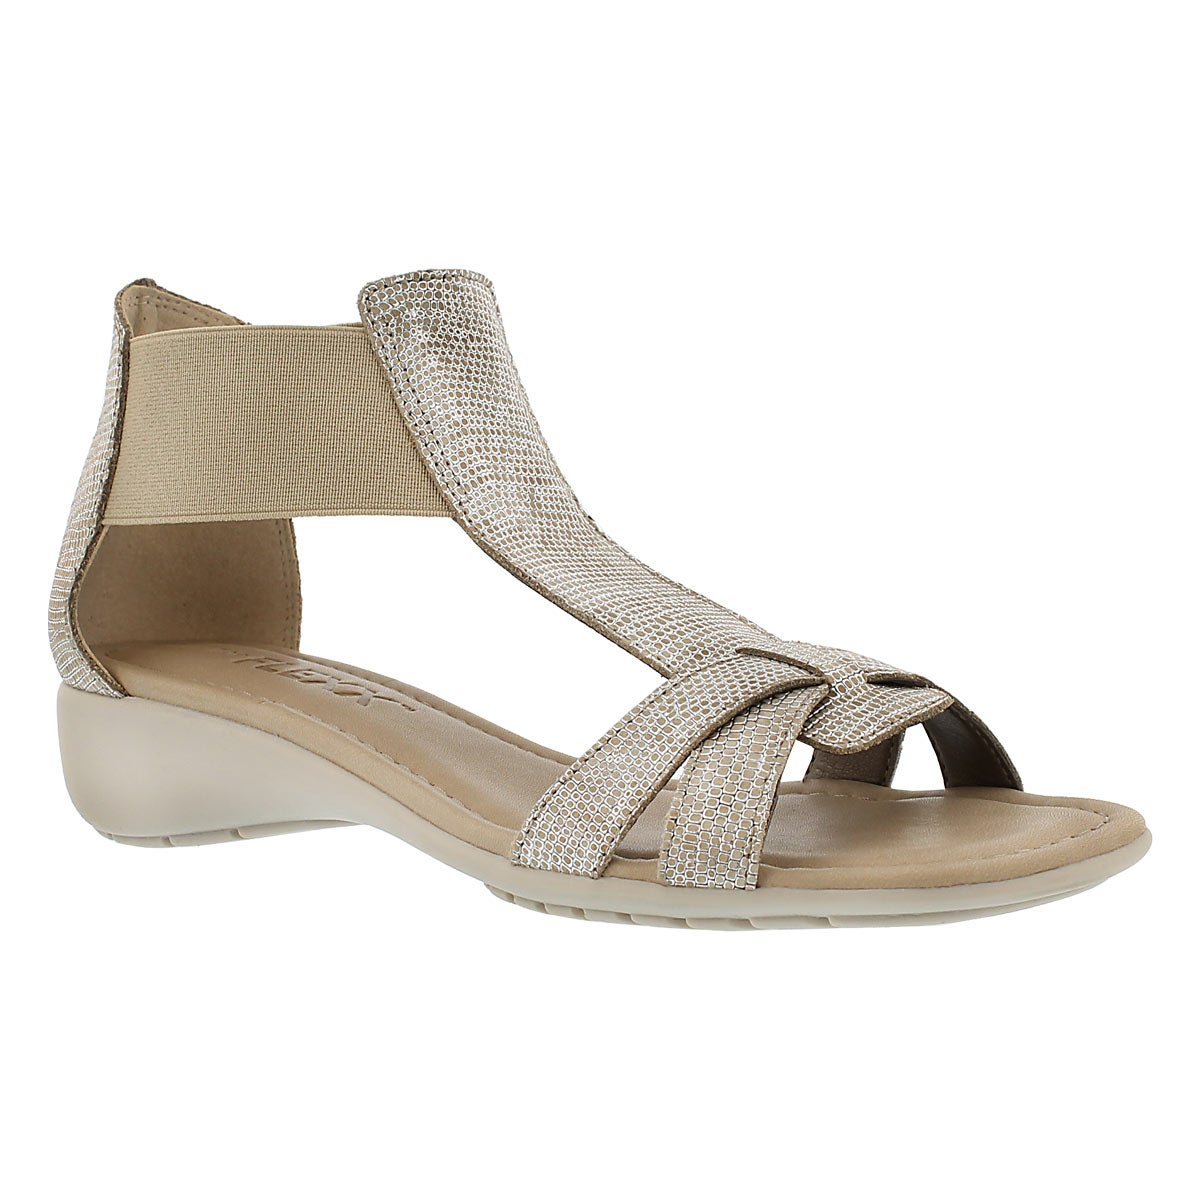 Women's BAND TOGETHER beige lizard sandals